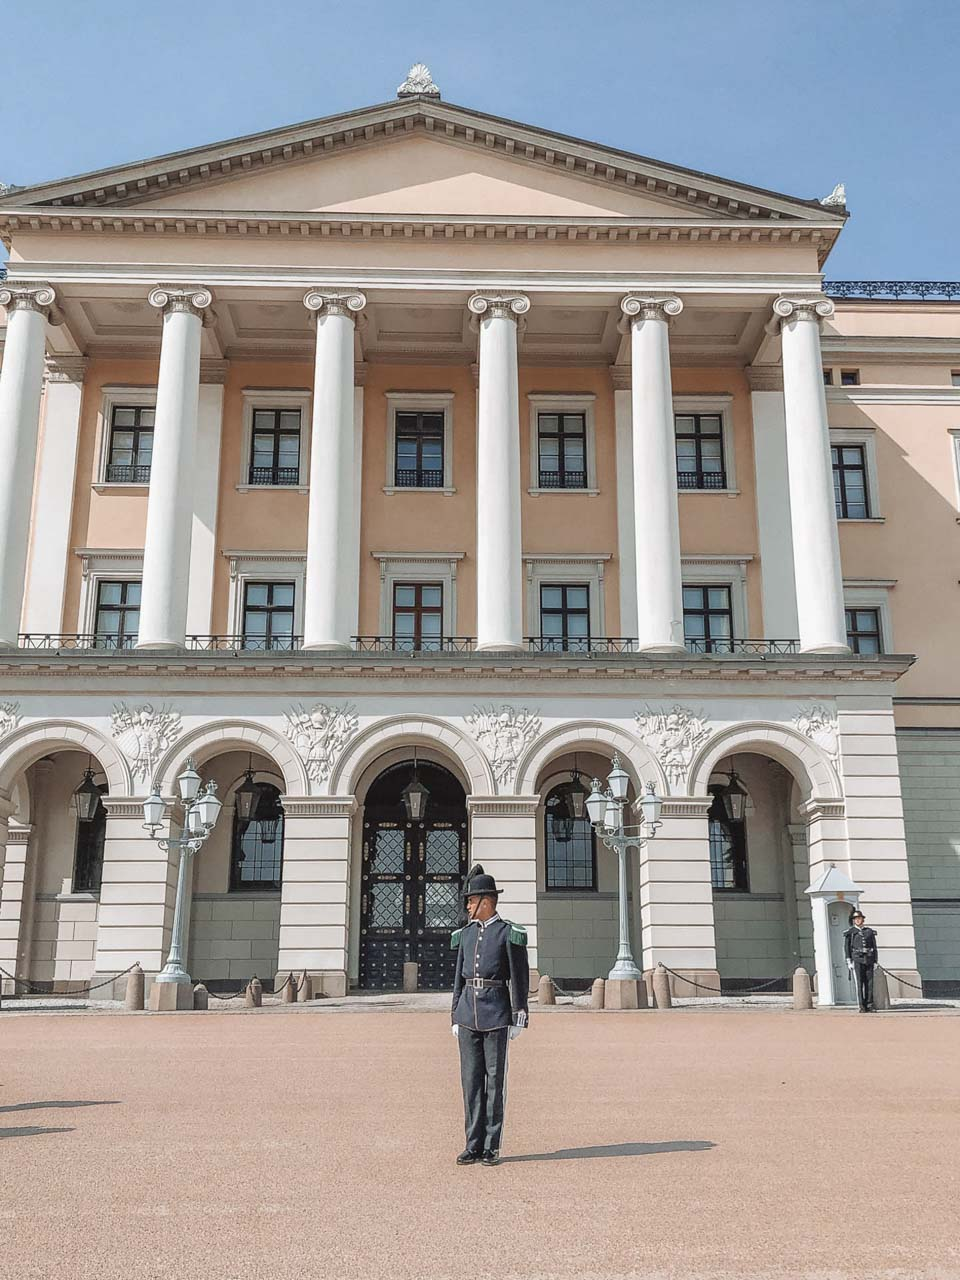 Changing of the guards at the Royal Palace in Oslo, Norway